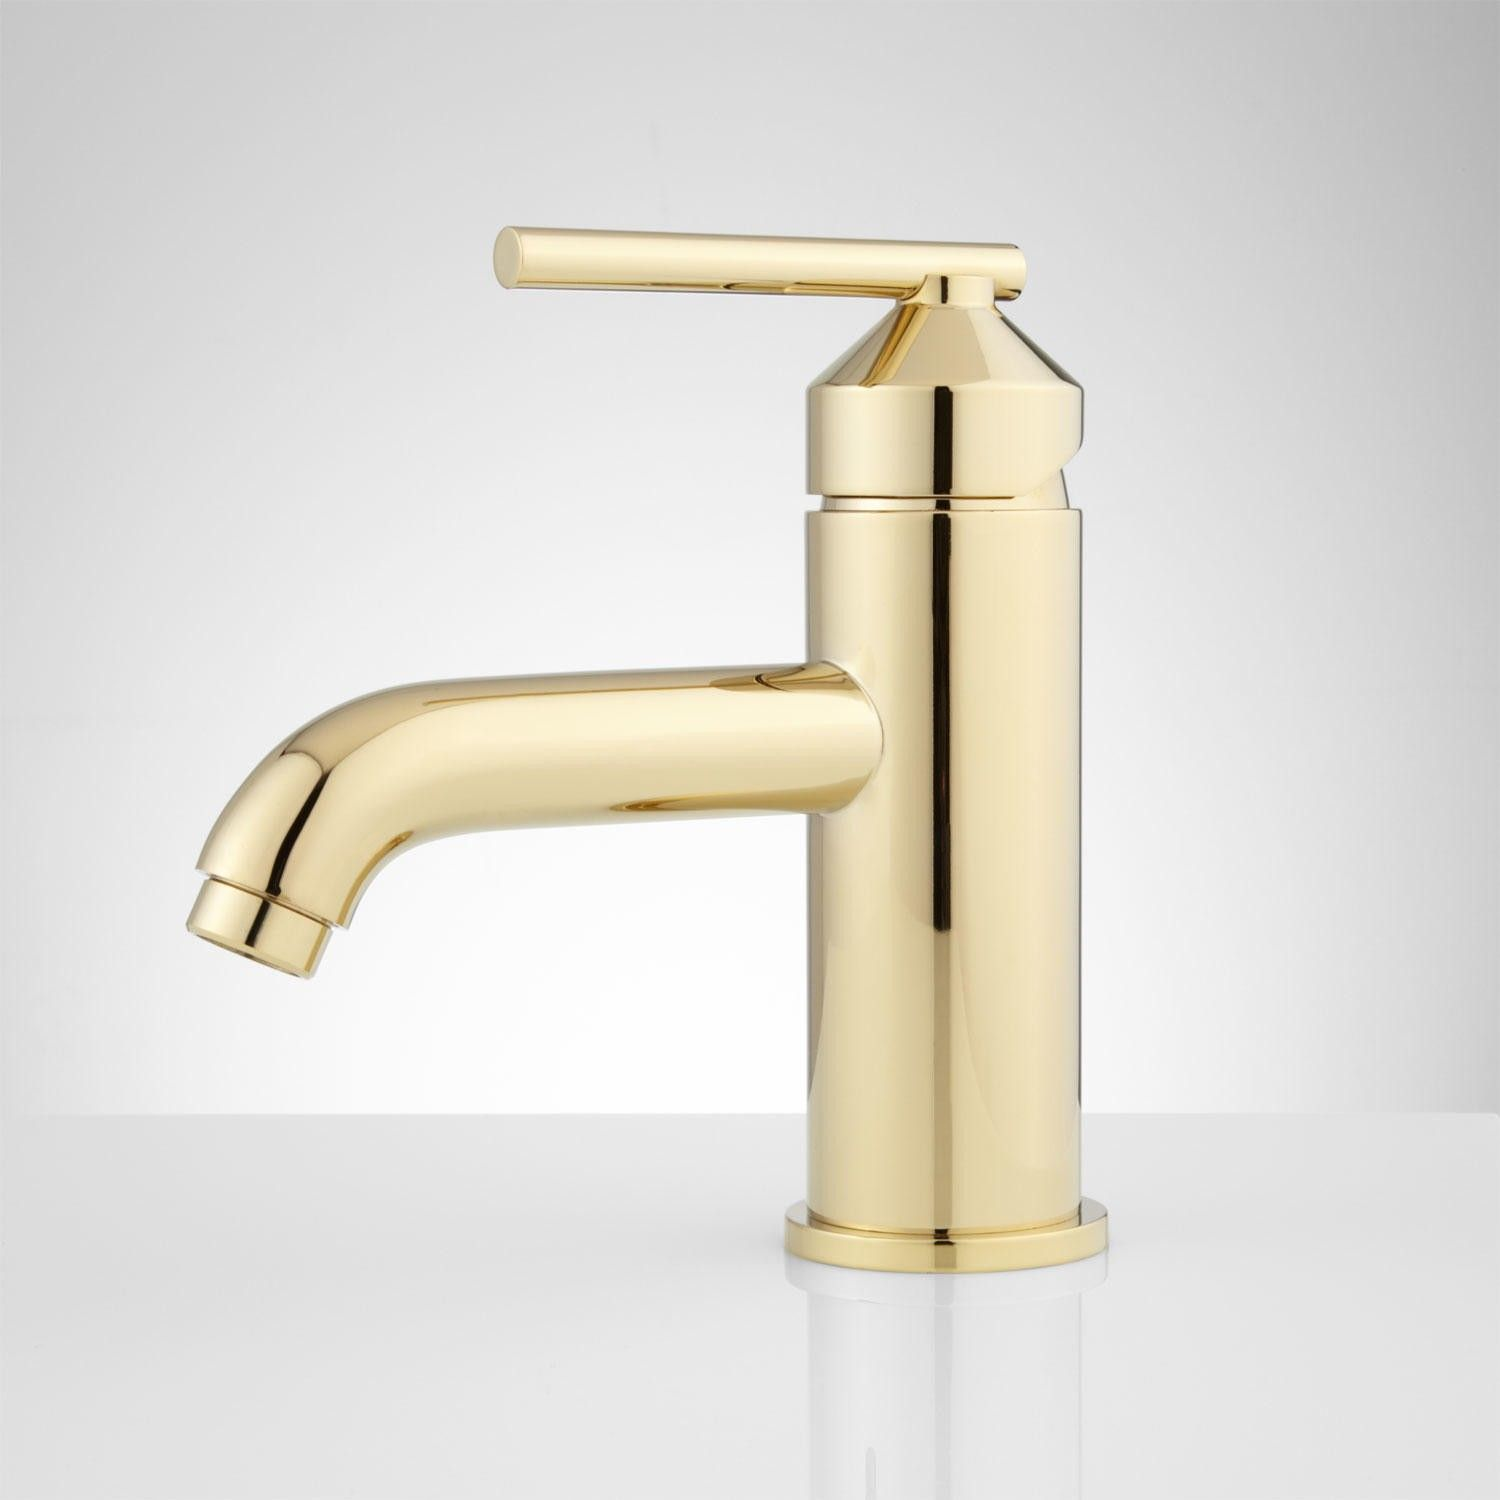 Bathroom Brass Bathroom Faucets With Forms Such As Rounds The Good Design  Of Brass Bathroom Faucets Gold Or.